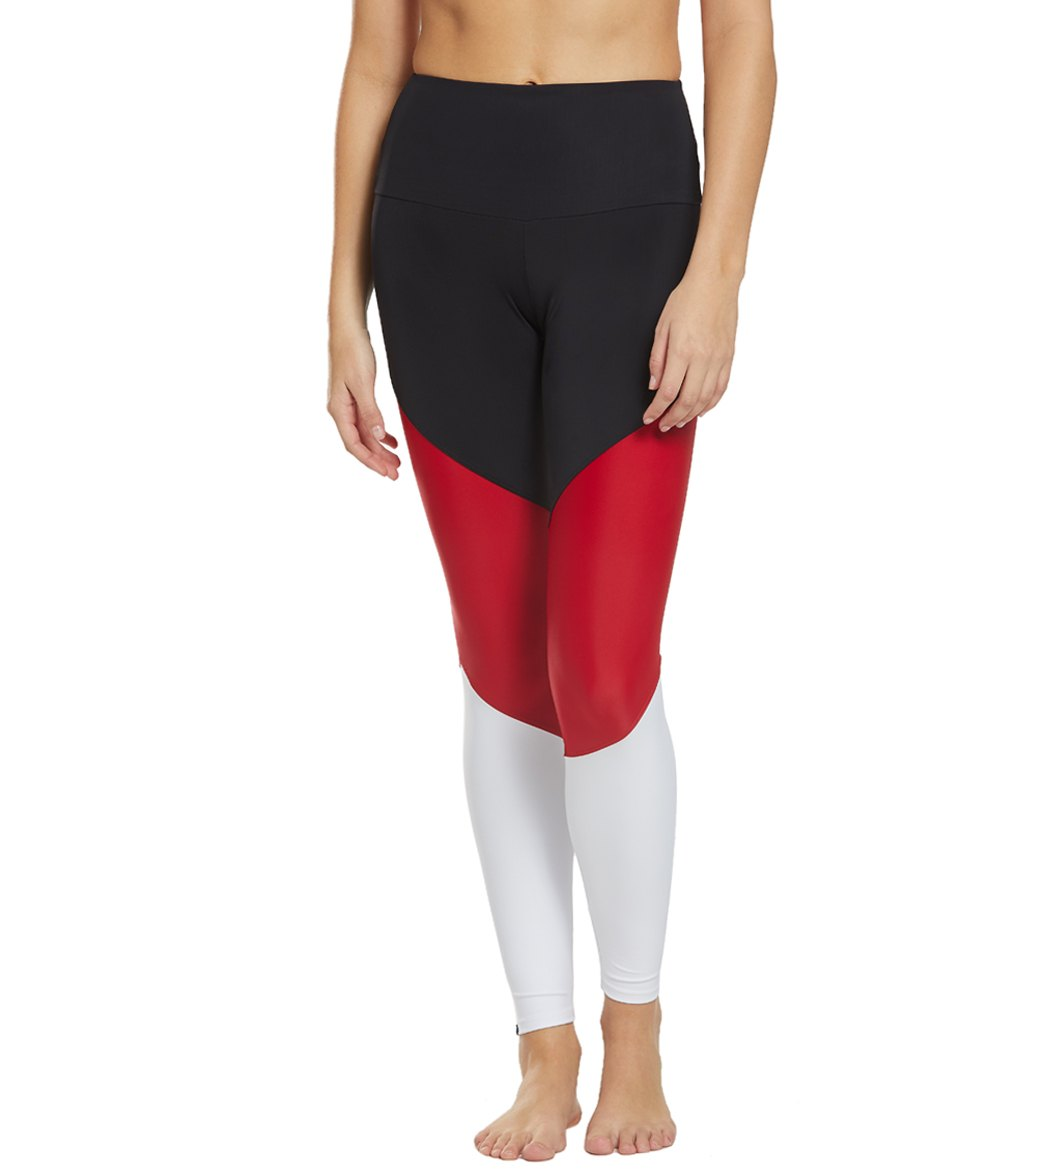 Onzie High Waisted Track Yoga Leggings - Combo Black/Red Spandex